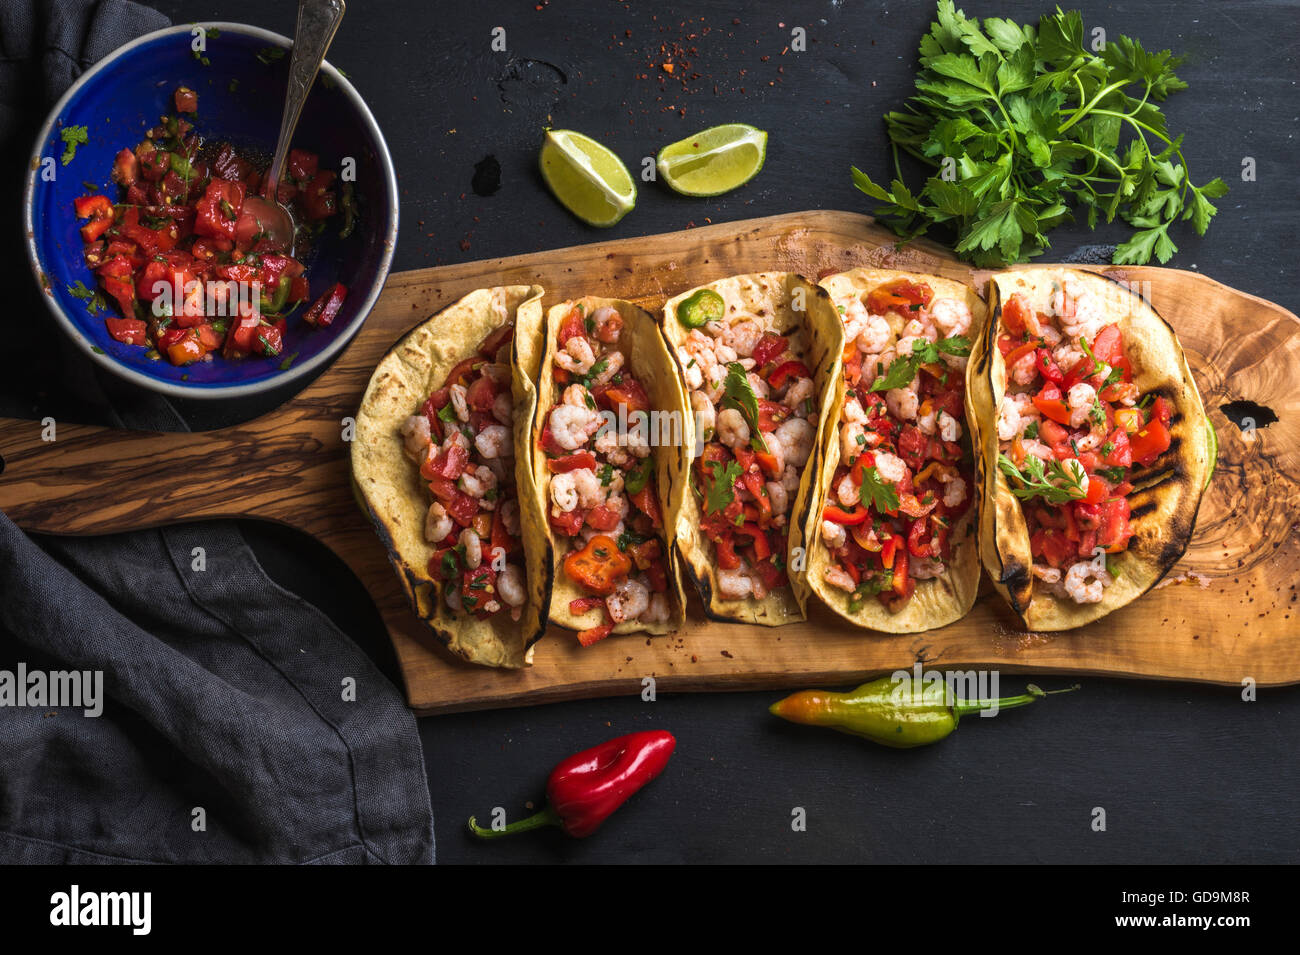 Shrimp tacos with homemade salsa sauce, limes and parsley on wooden board over dark background. Top view. Mexican - Stock Image